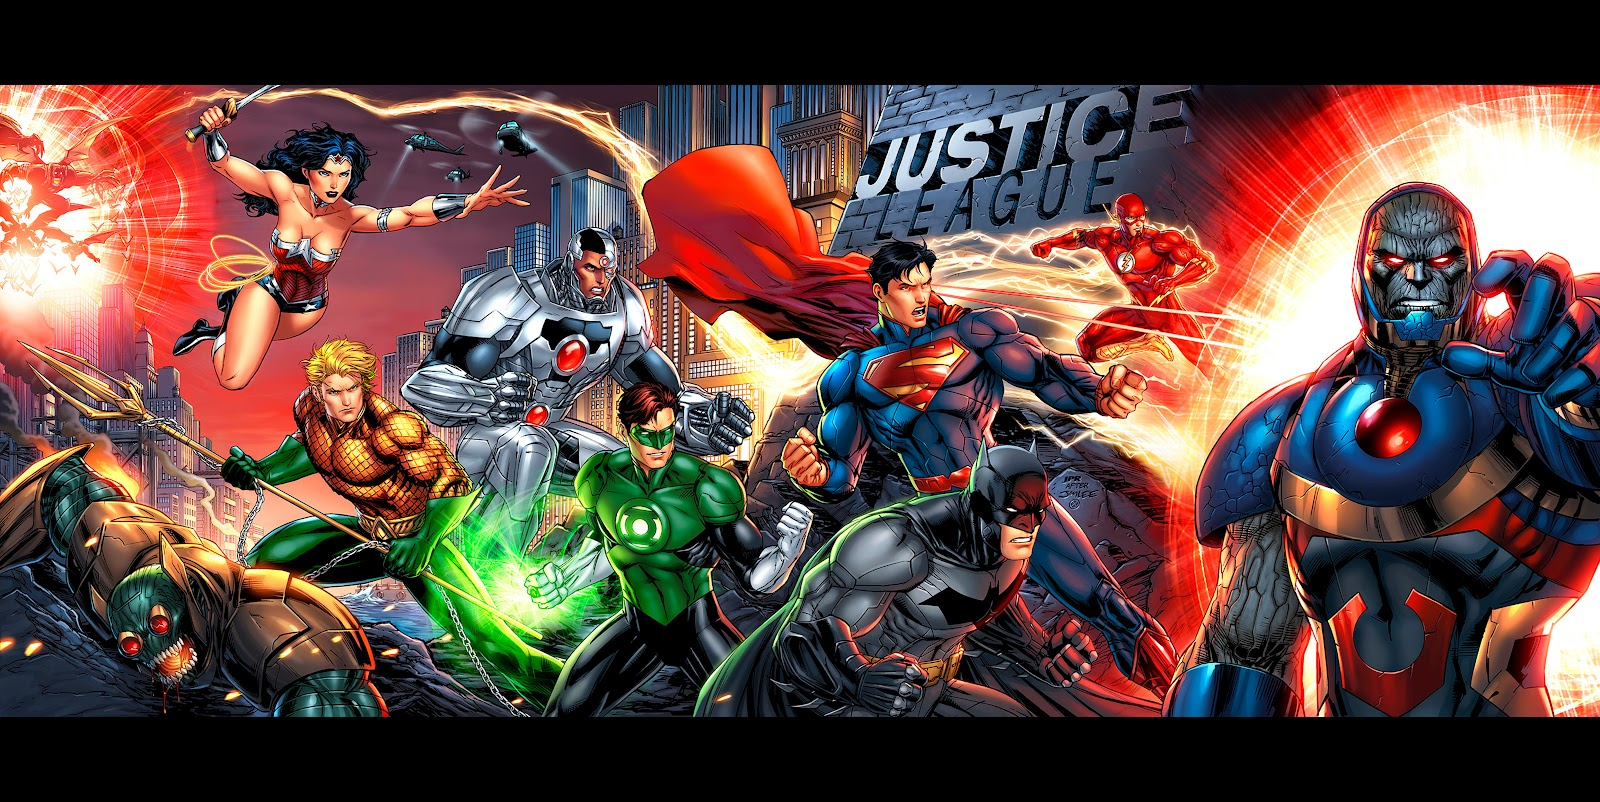 http://2.bp.blogspot.com/-dpZI_P78Boc/UBbsUW-PPRI/AAAAAAAAGeQ/b96r3q1D27M/s1600/new+52+superman+costume+batman+aquaman+flash+cyborg+wonder+woman+green+lantern+darkseid+wallpaper+justice+league+by+jprart+jim+lee+trinity.jpg